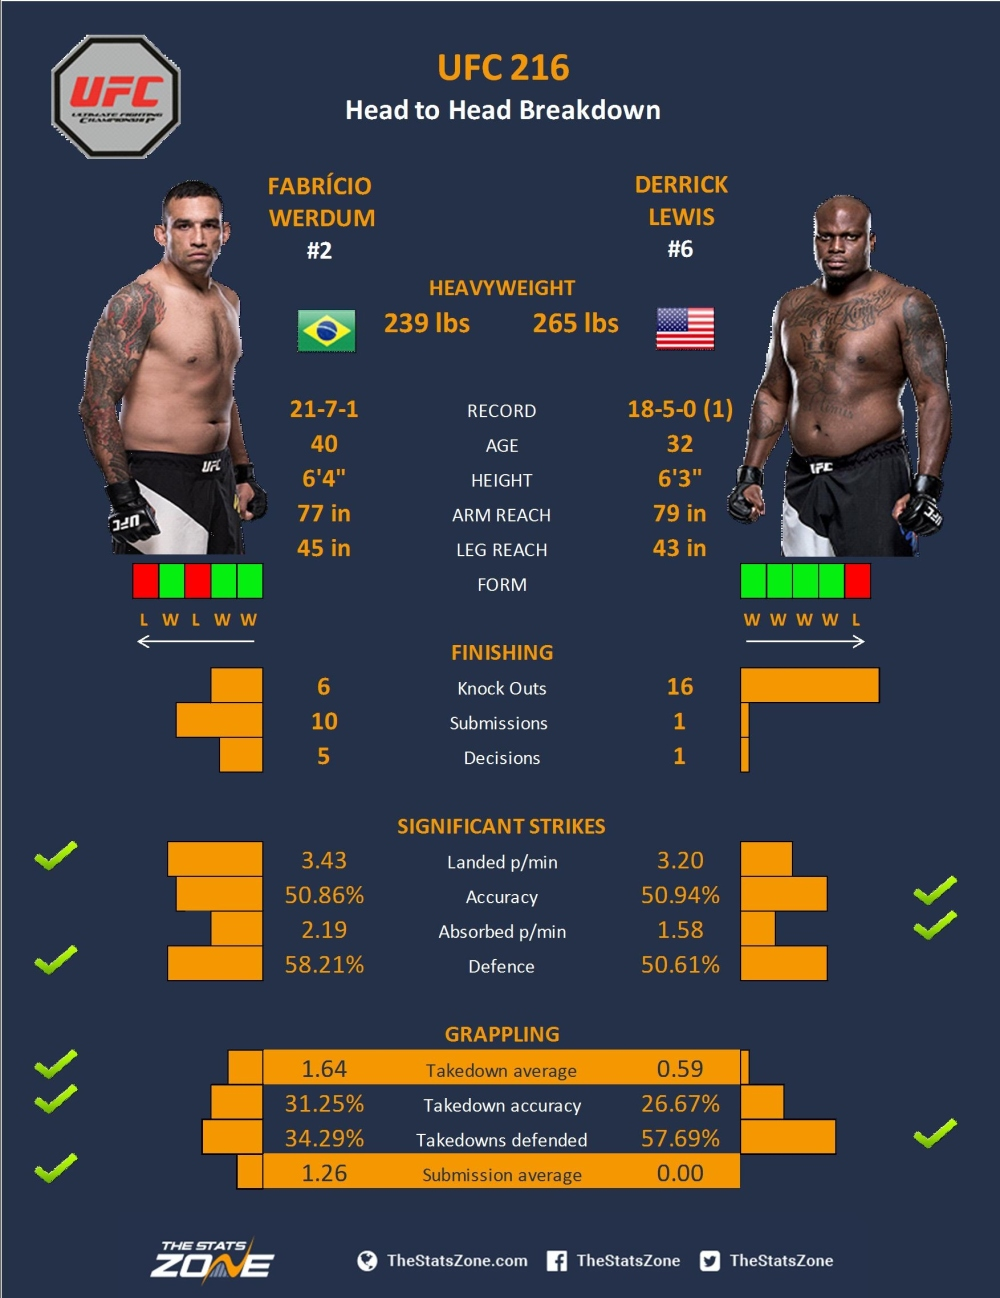 MMA-Preview-–-Fabrício-Werdum-vs-Derrick-Lewis-at-UFC-216.jpg